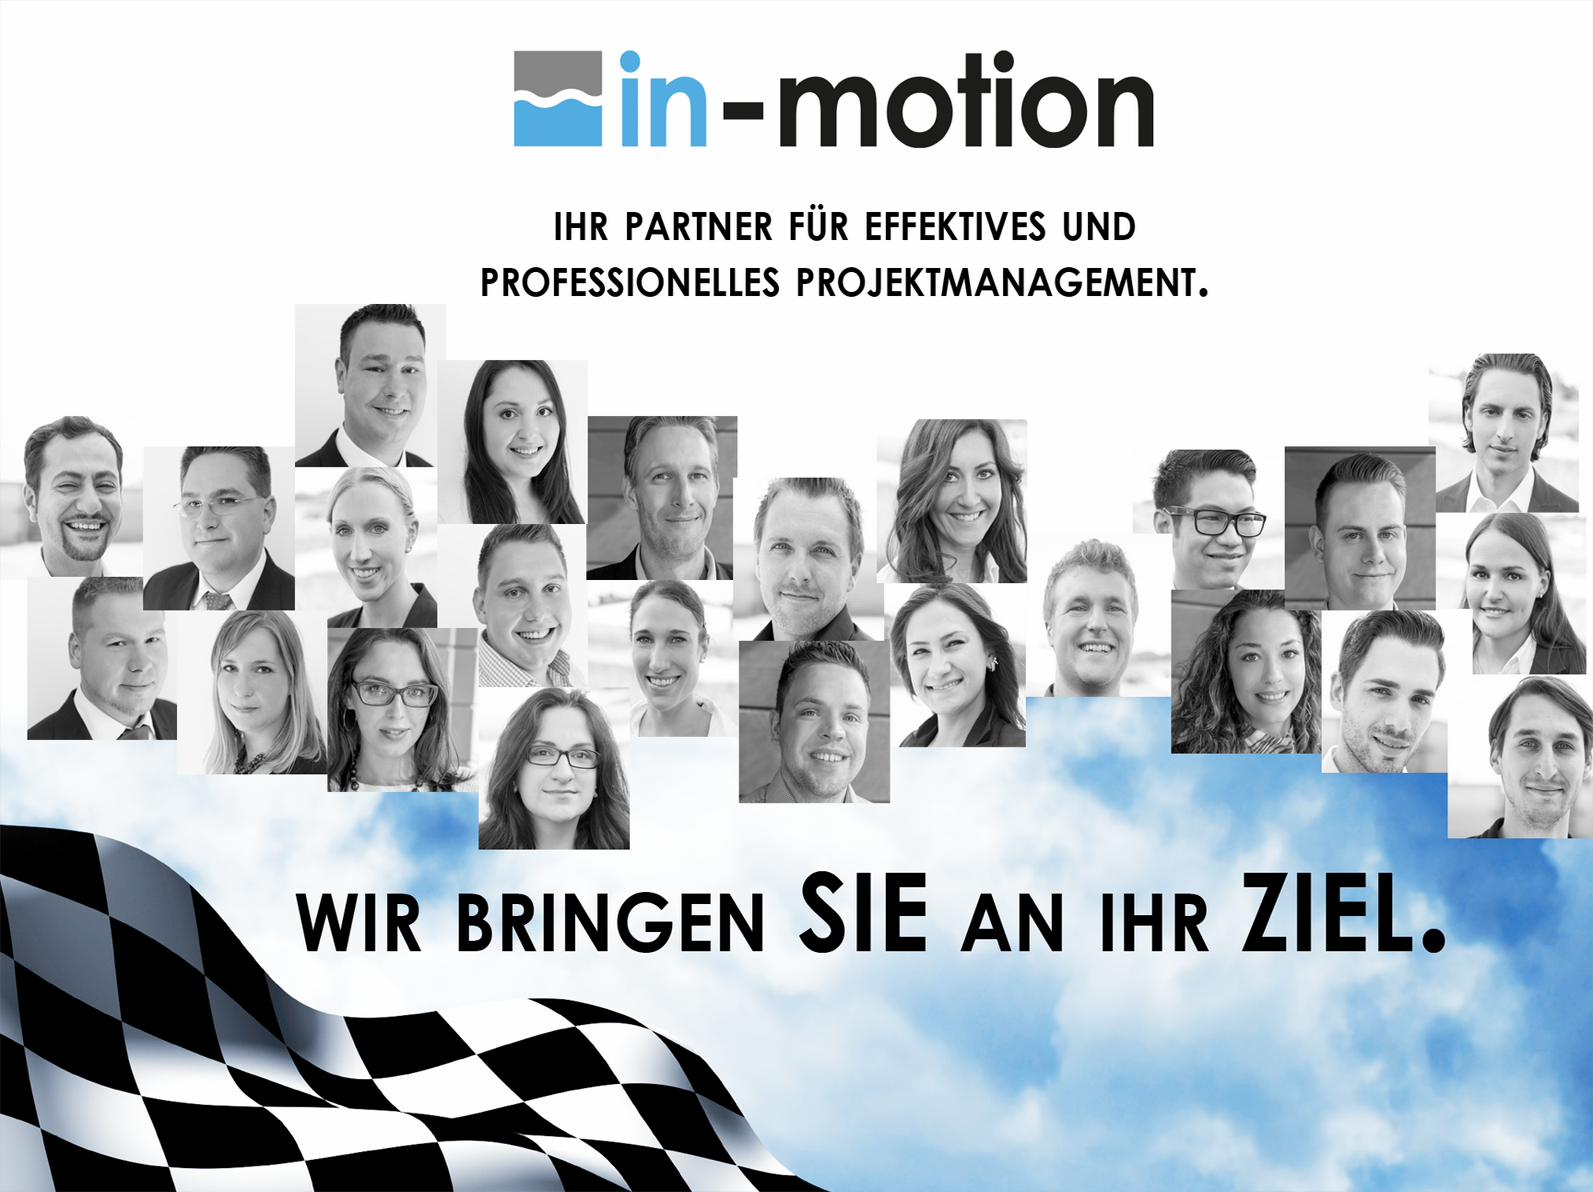 in-motion GmbH